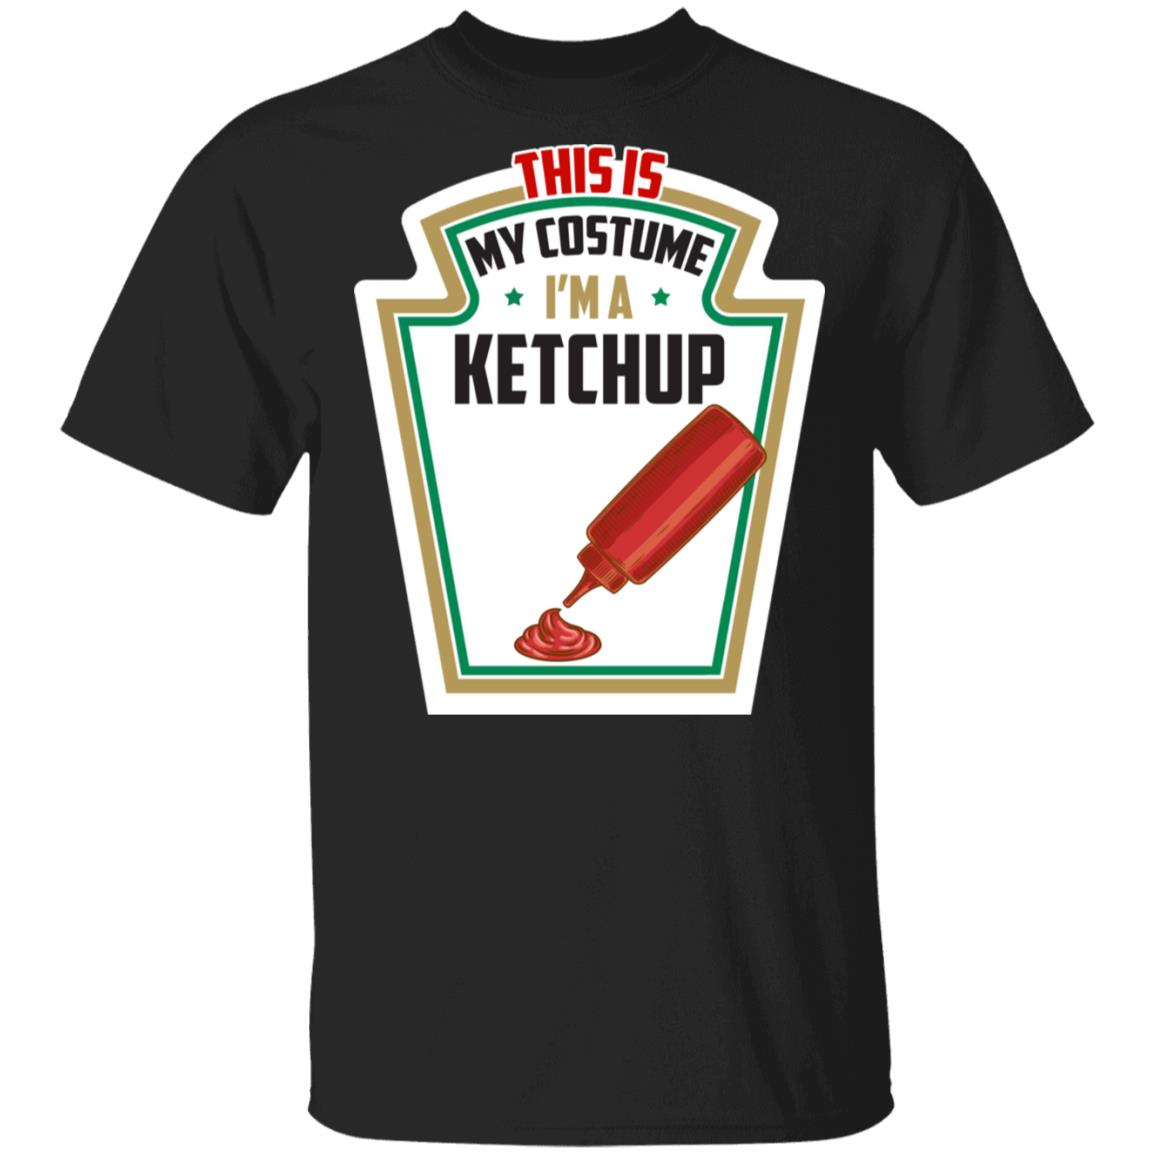 I'm A Kechup This Is My Costume Unisex Short Sleeve